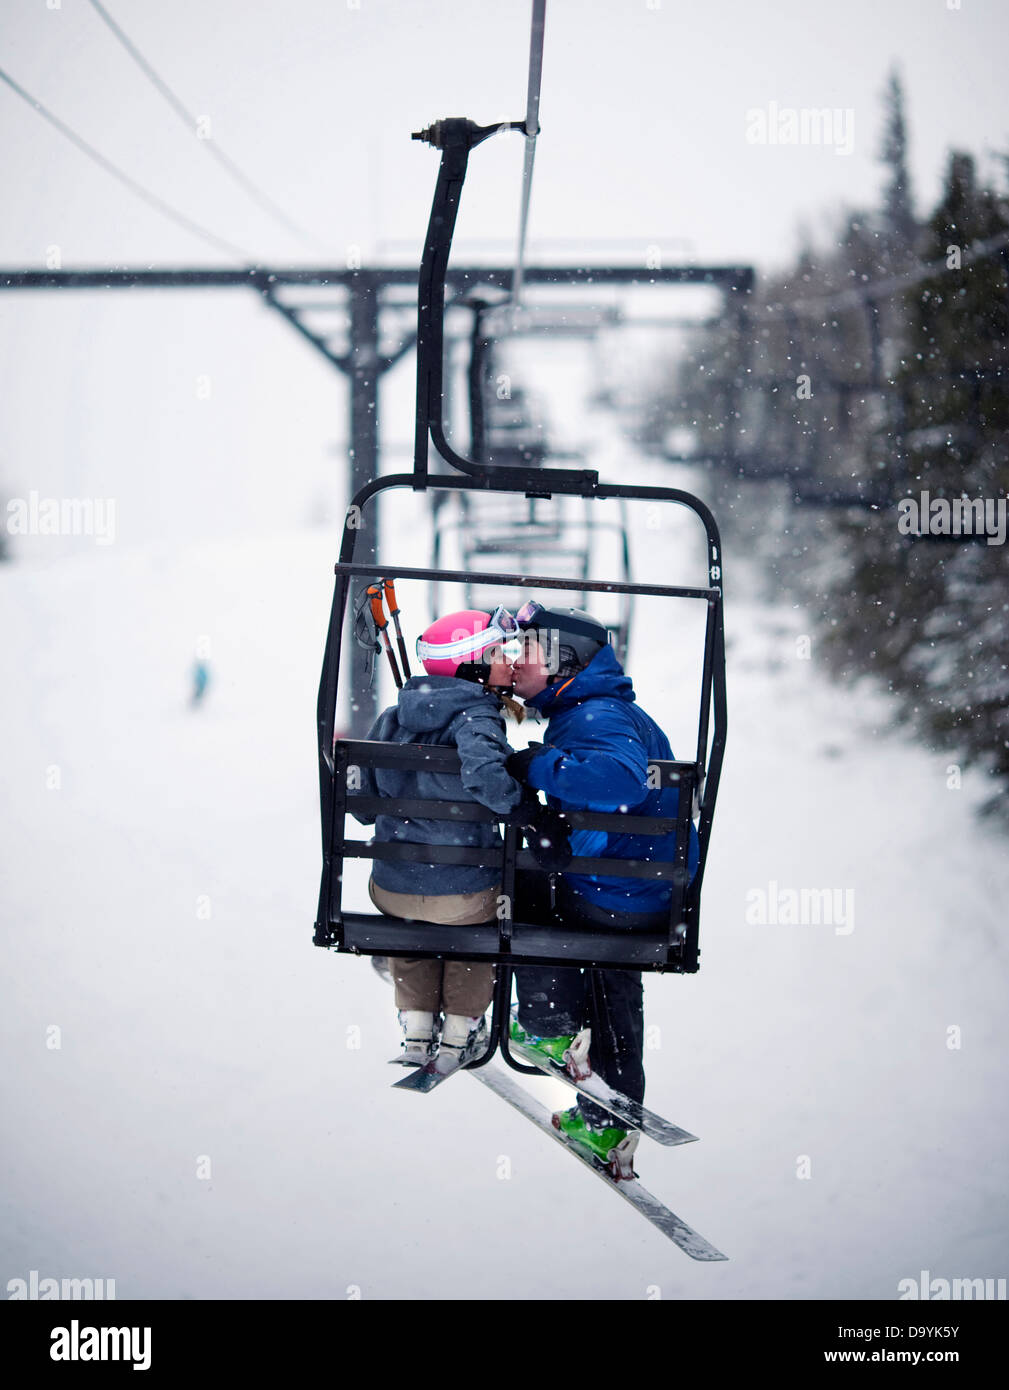 A couple share a kiss on a chairlift in softly falling snow. - Stock Image